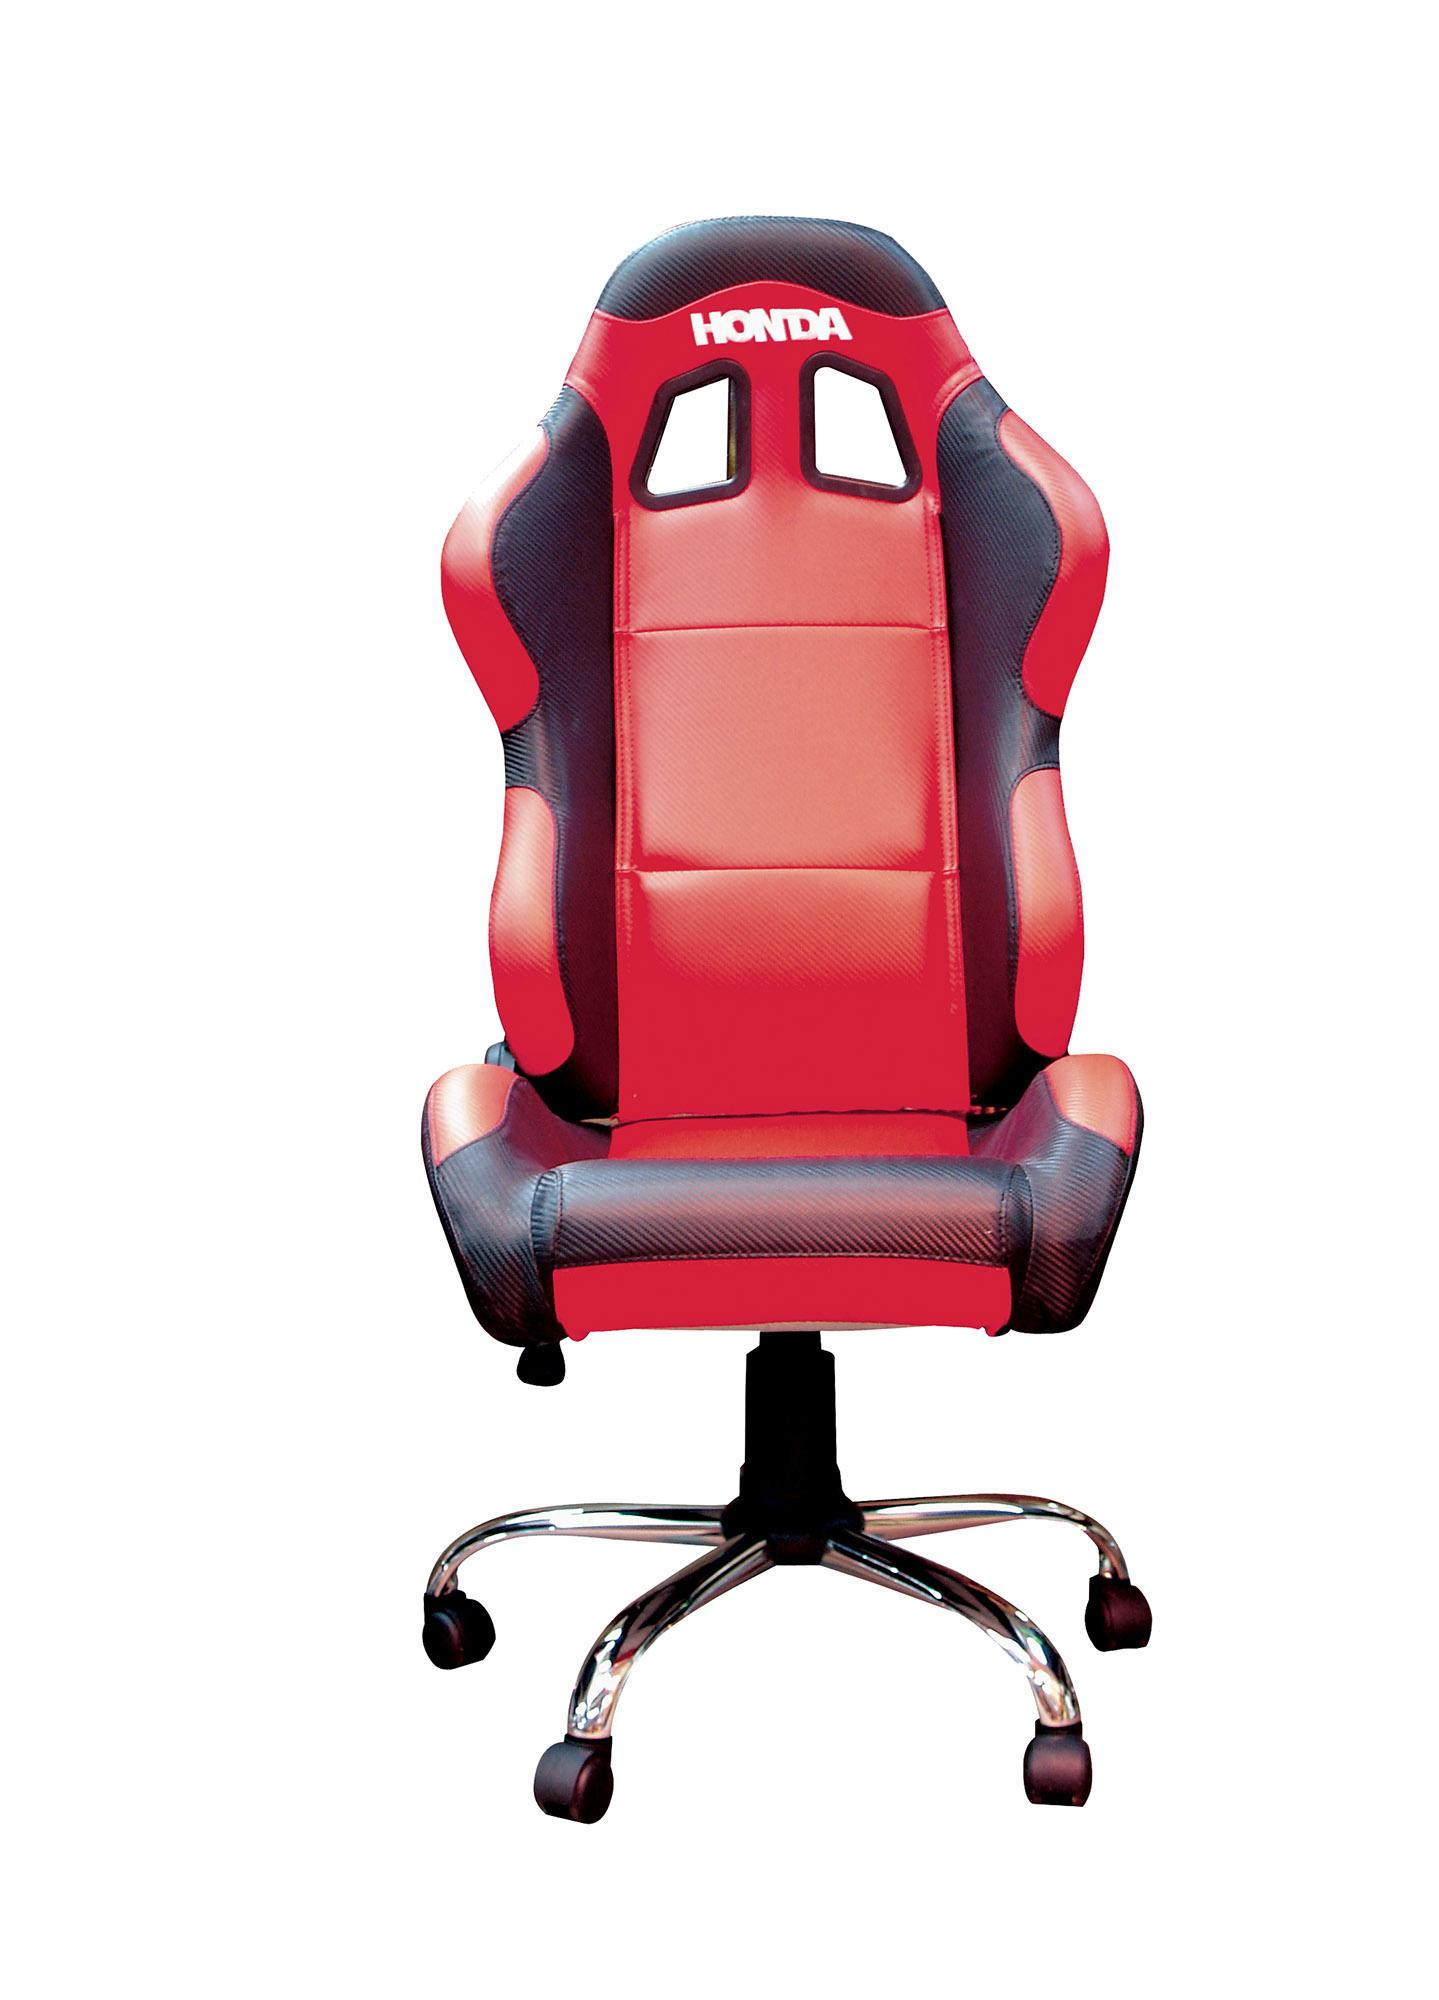 RIDER PADDOCK TEAM CHAIR - HONDA RED WITH BLACK TRIM